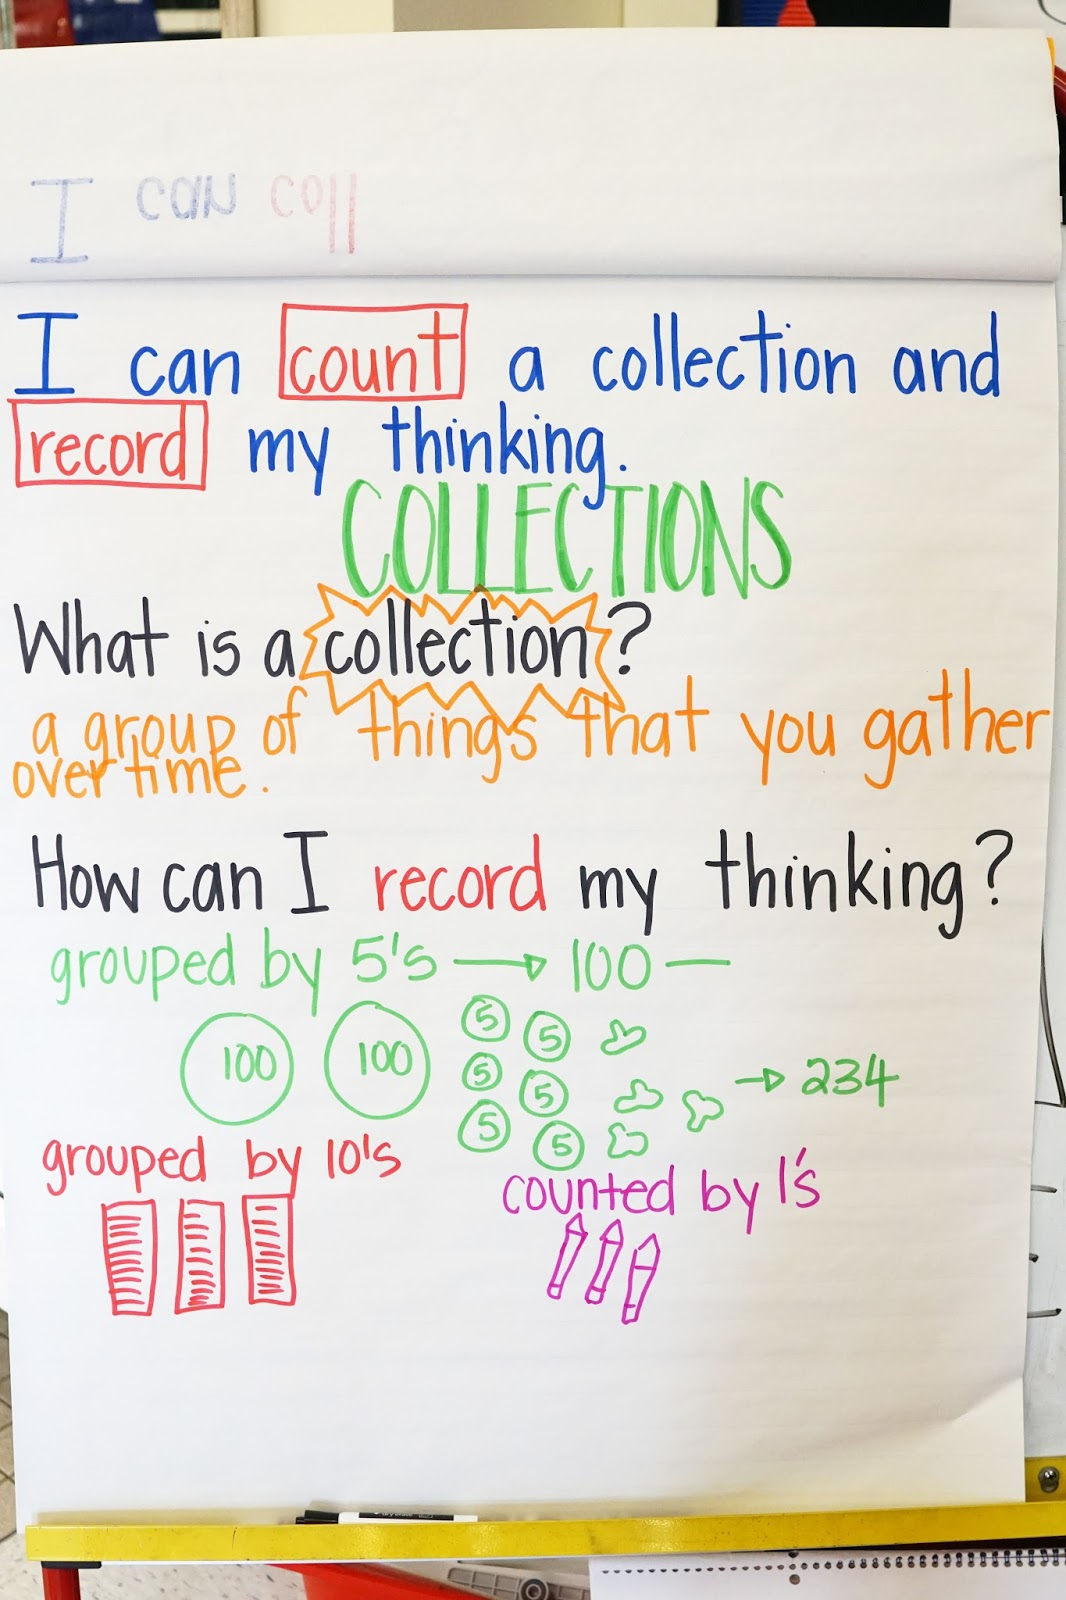 Counting Collections - The Lettered Classroom